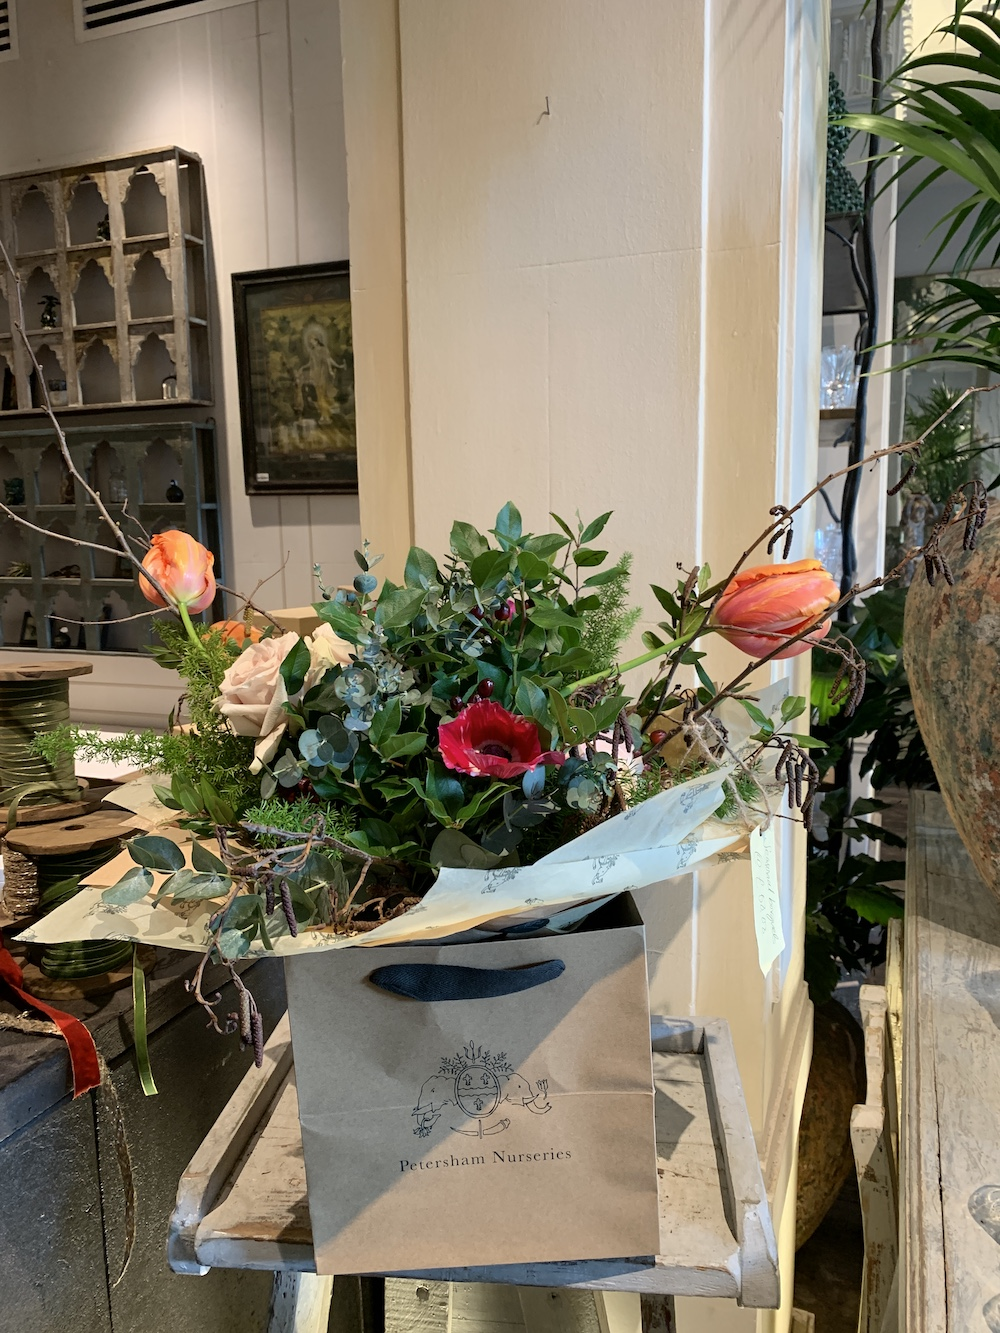 7 Things to do at Petersham Nurseries Petersham Arrangement #PetershamNurseries #Garden #GardenTools #GardenSupplies #Gardening #HomeDecor #GardenDecor #London #CoventGarden